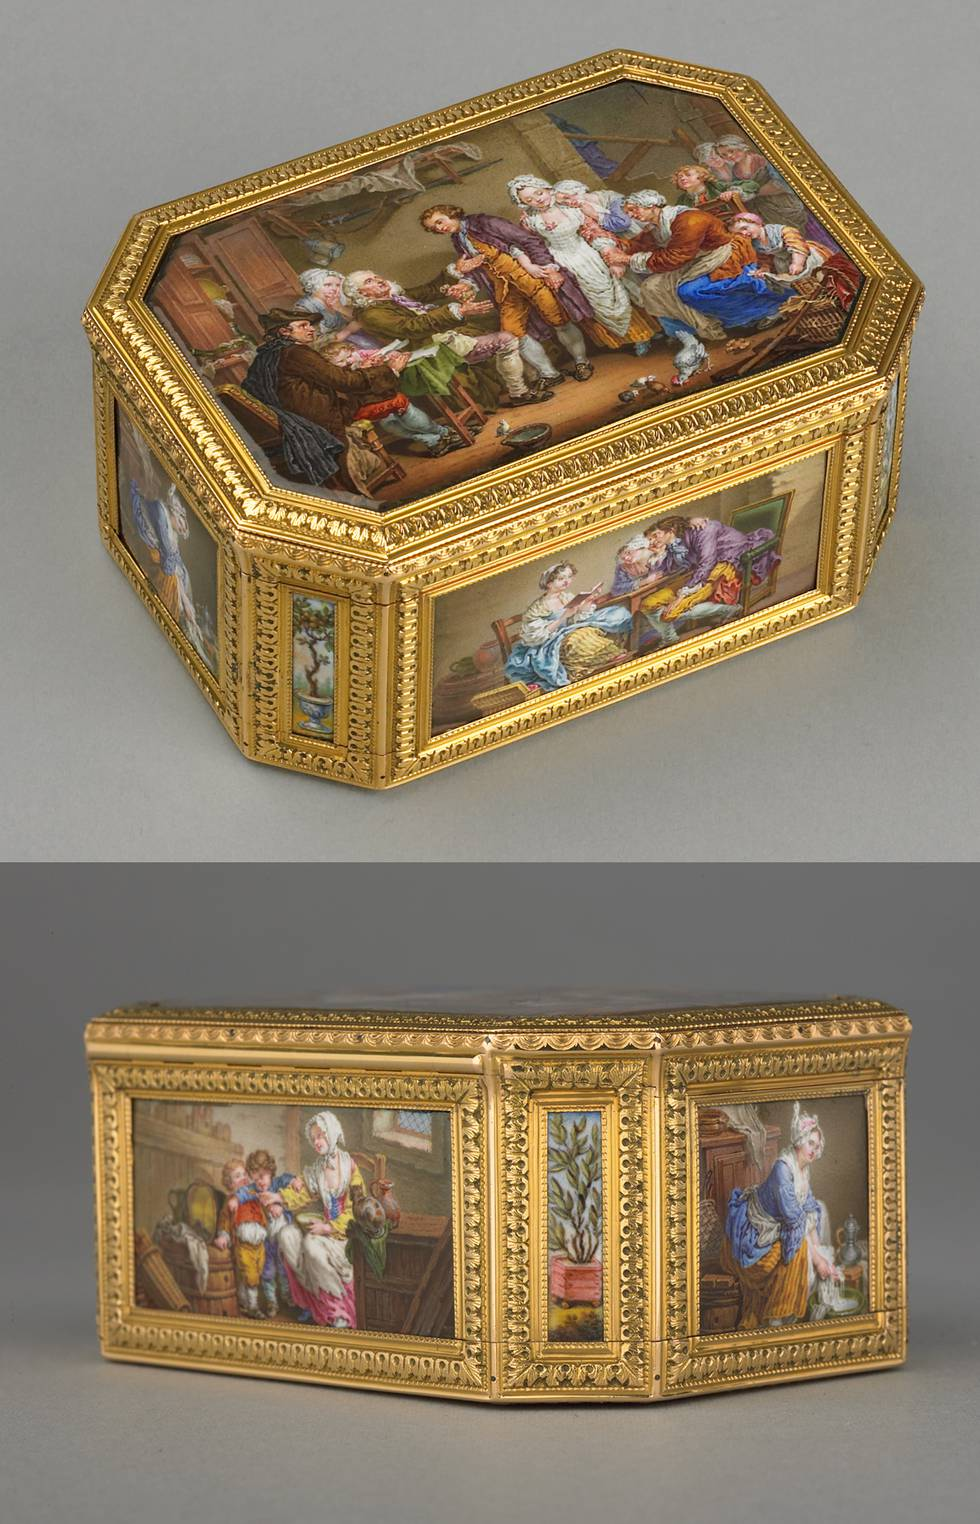 Two images of a gold snuff box, covered in 6 enamel images